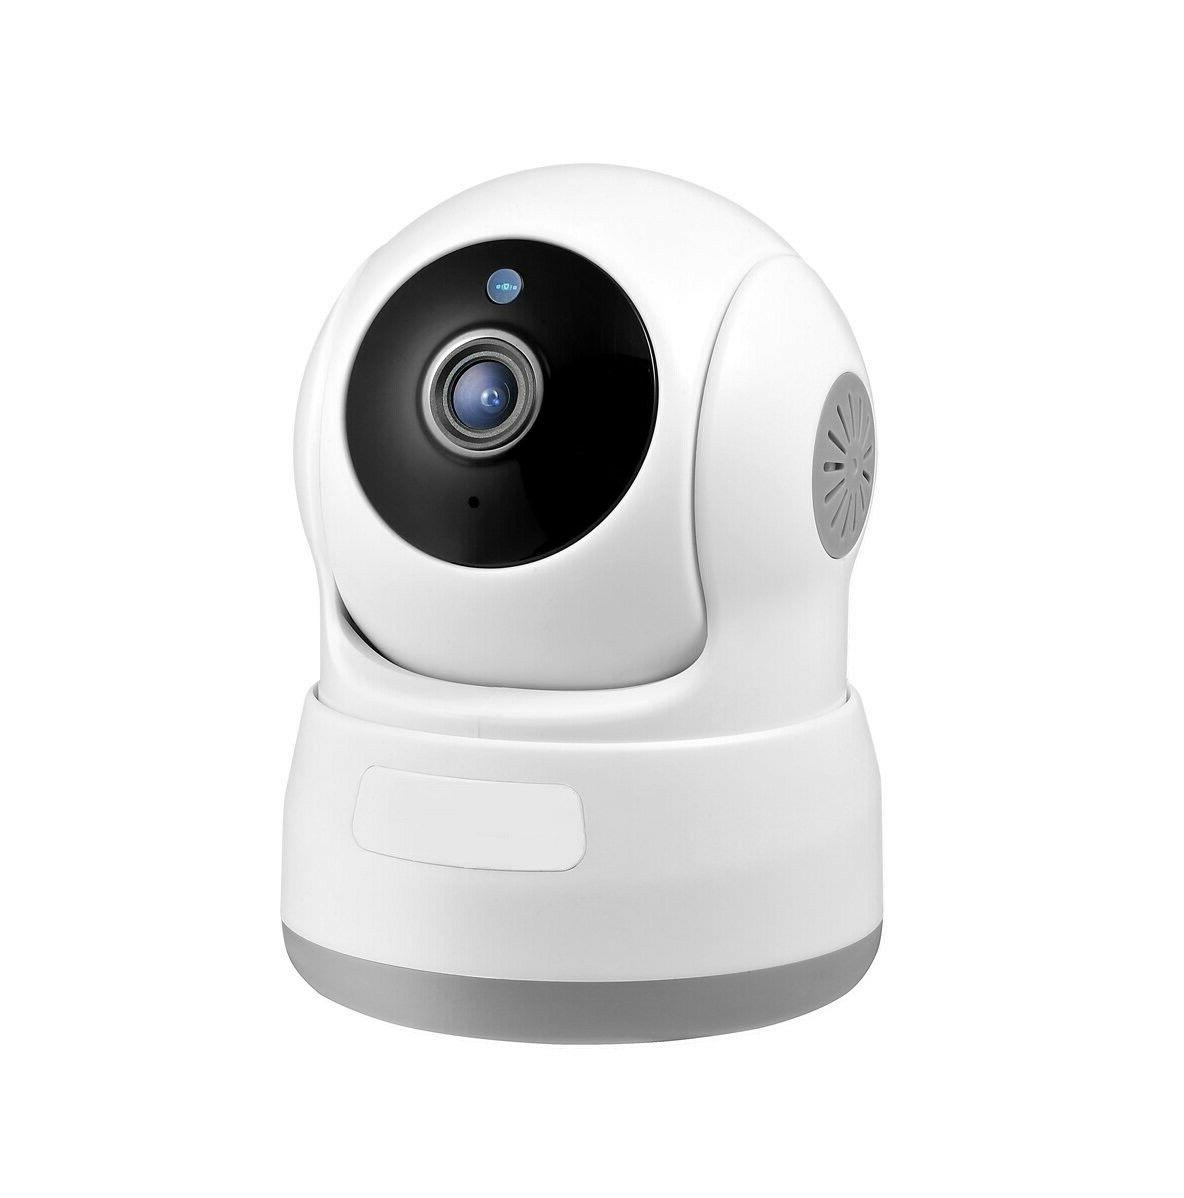 4 Cameras View HD Indoor NightVision Video Camera